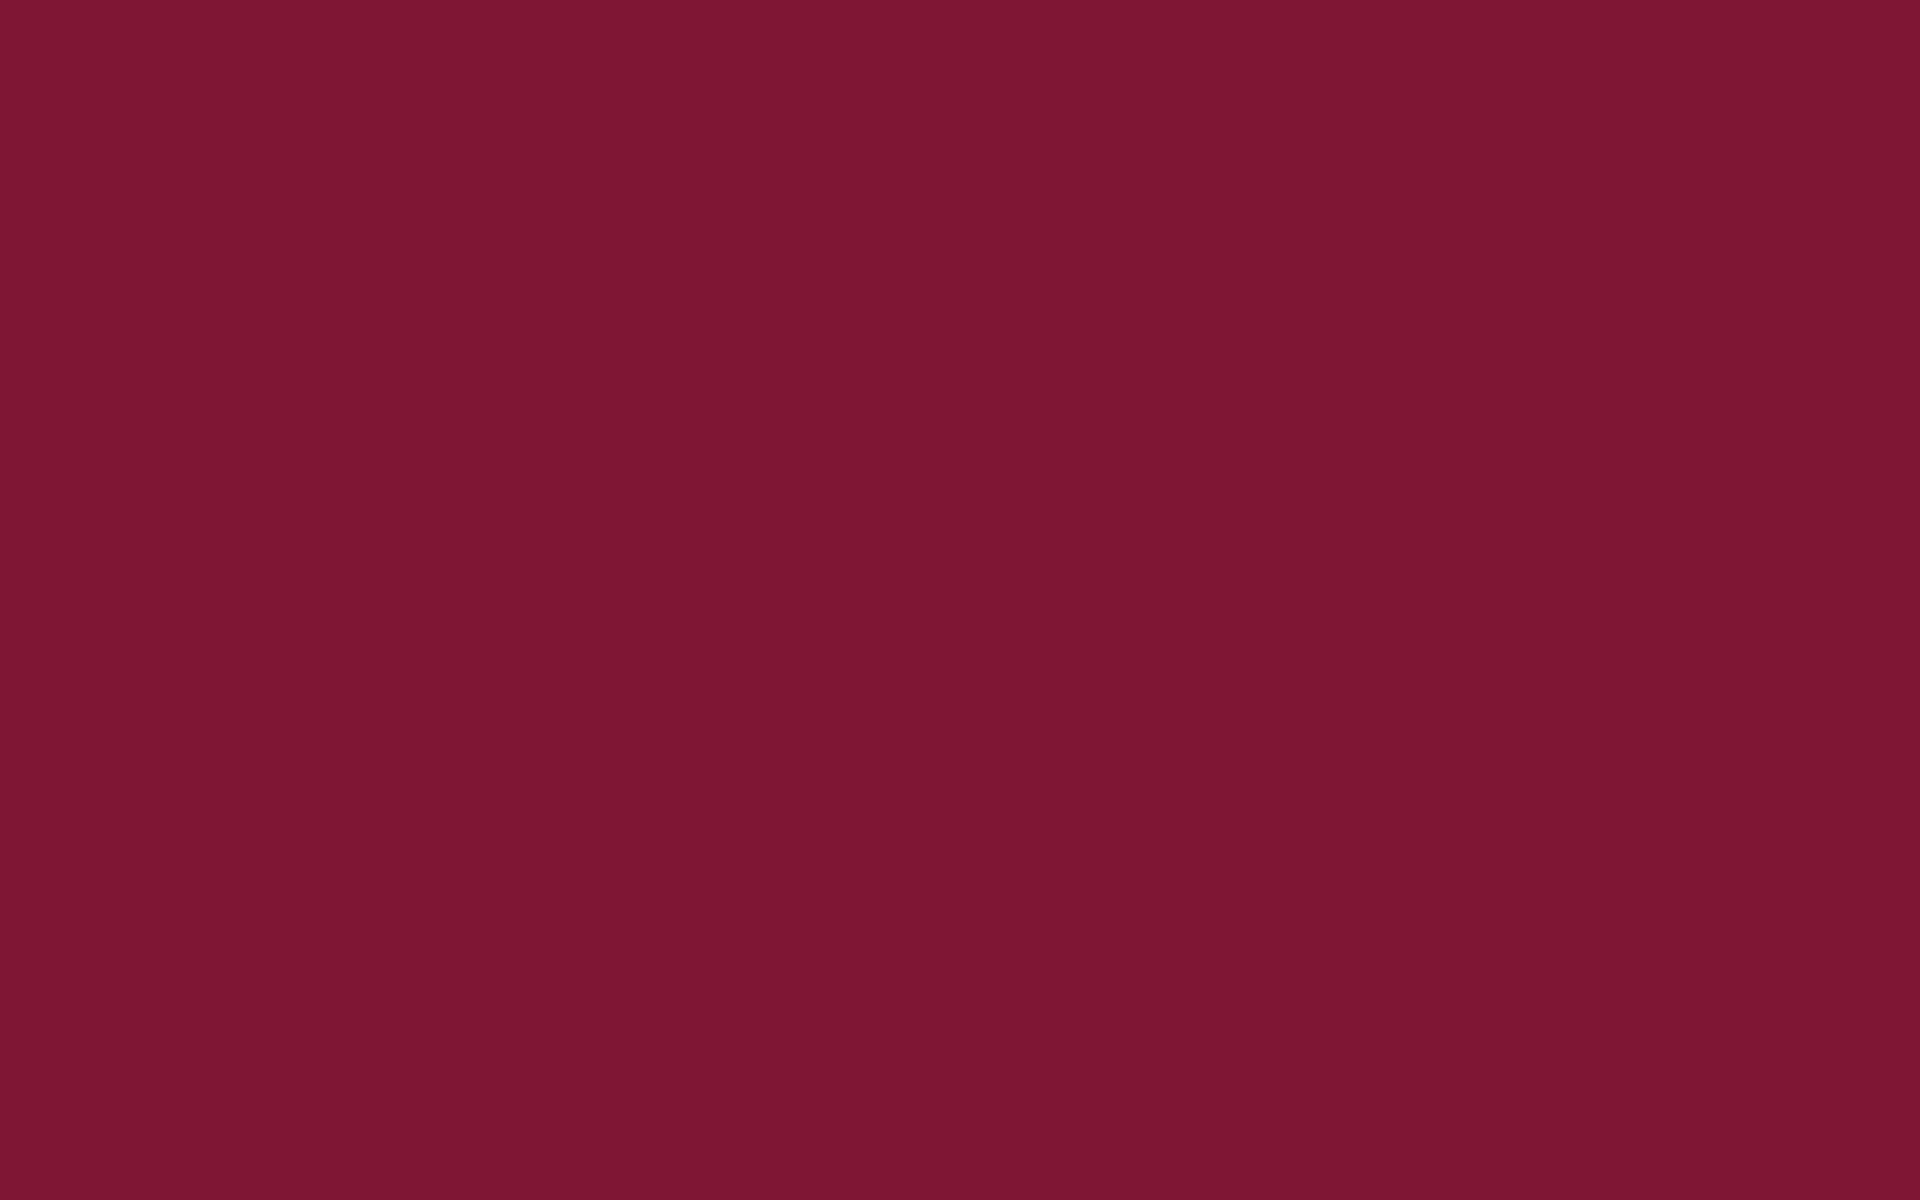 1920x1200 claret solid color background